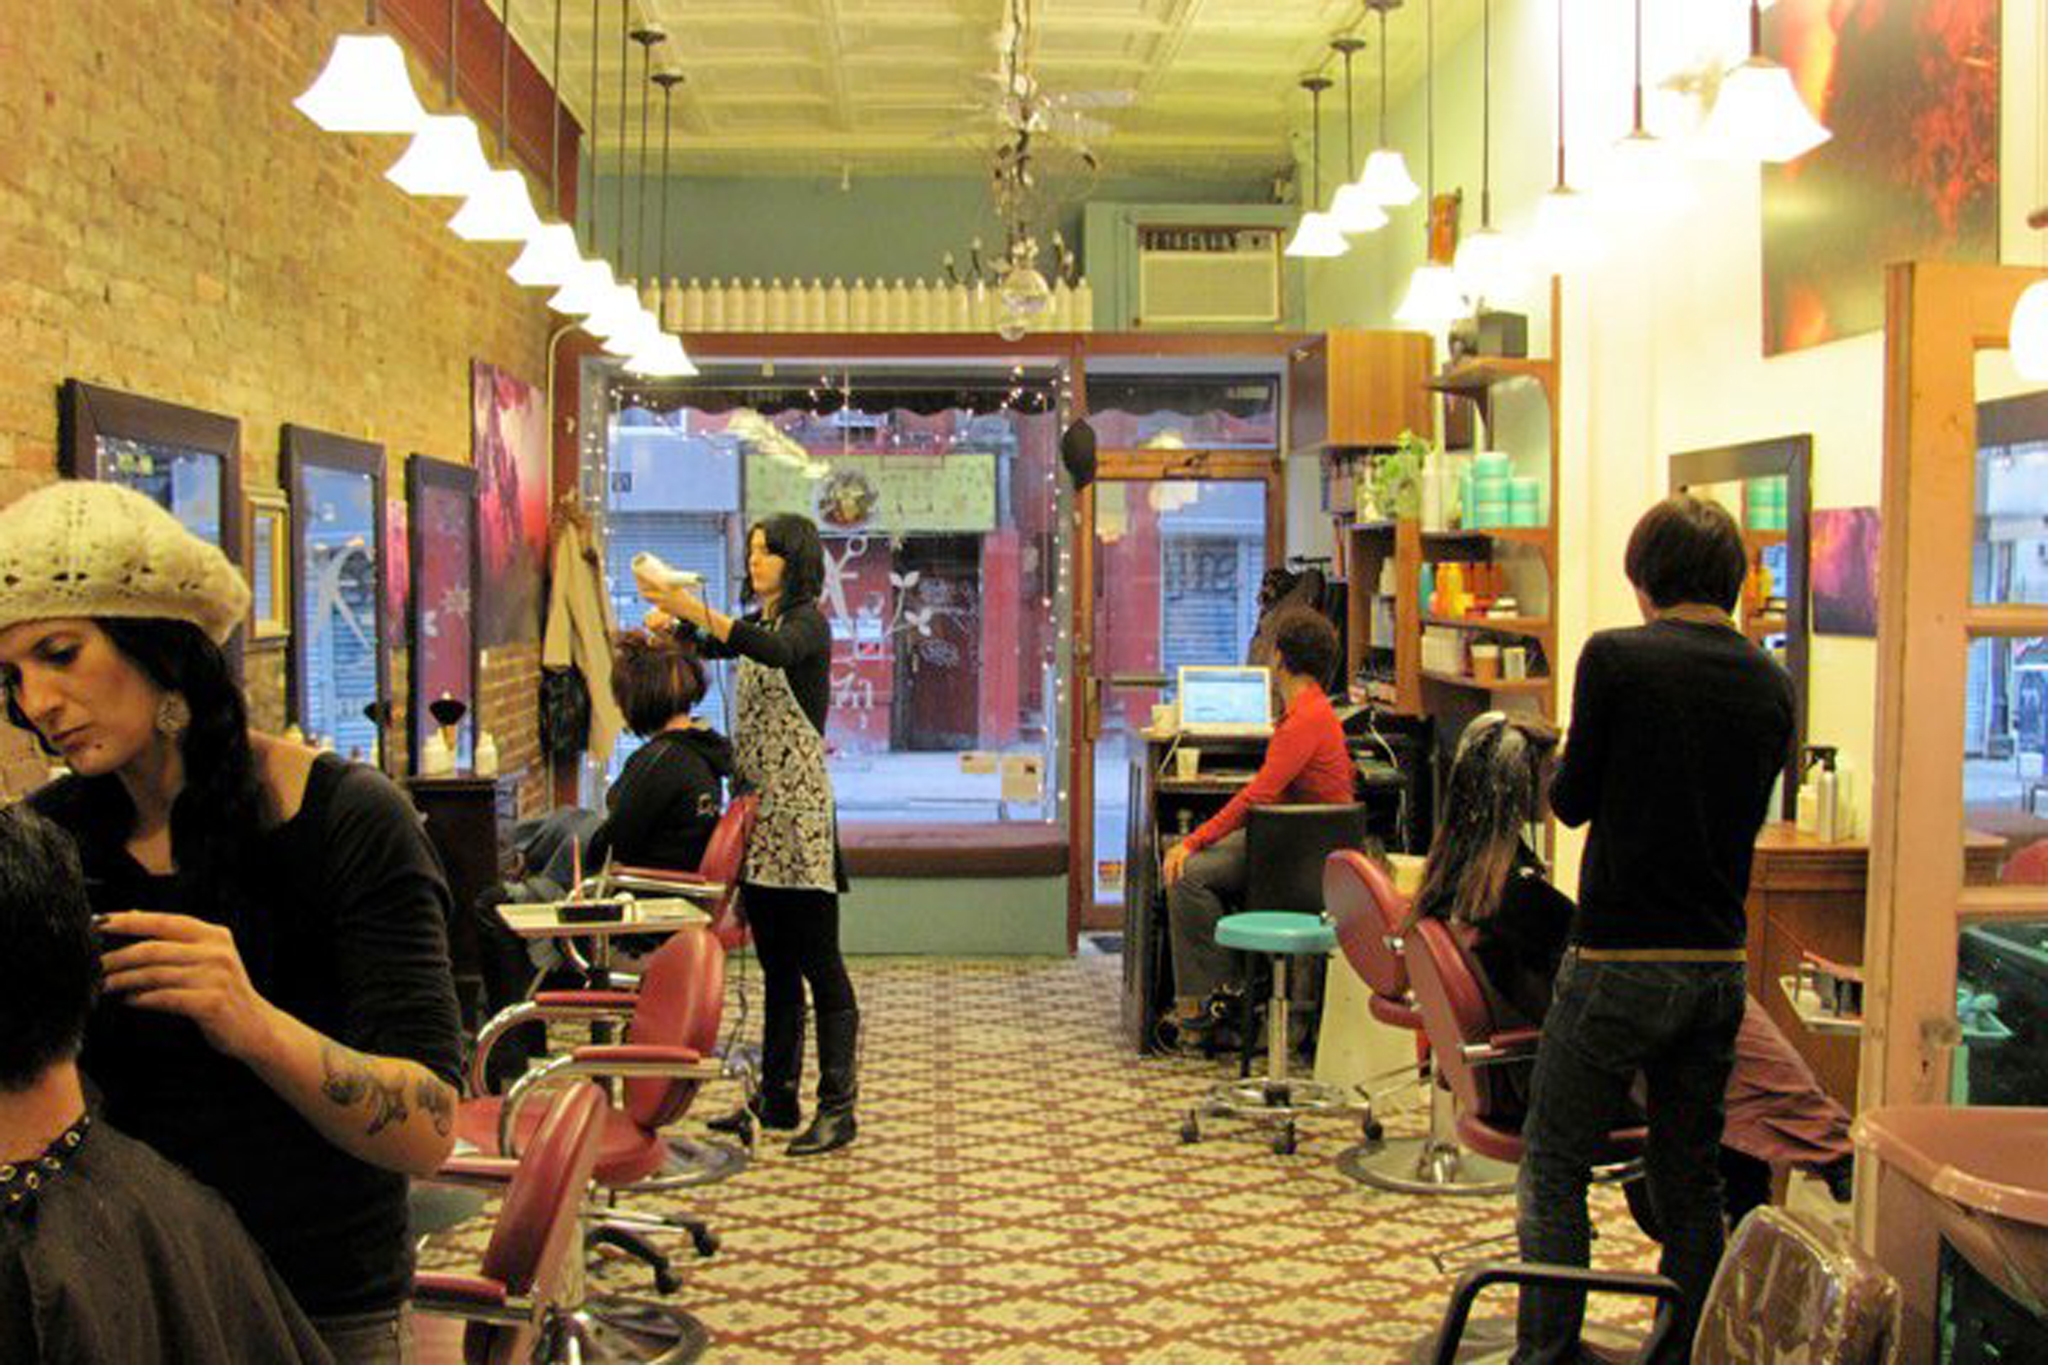 Arte Salon & Spa Best Hair Salons Nyc Has To Offer For Cuts And Color Treatments